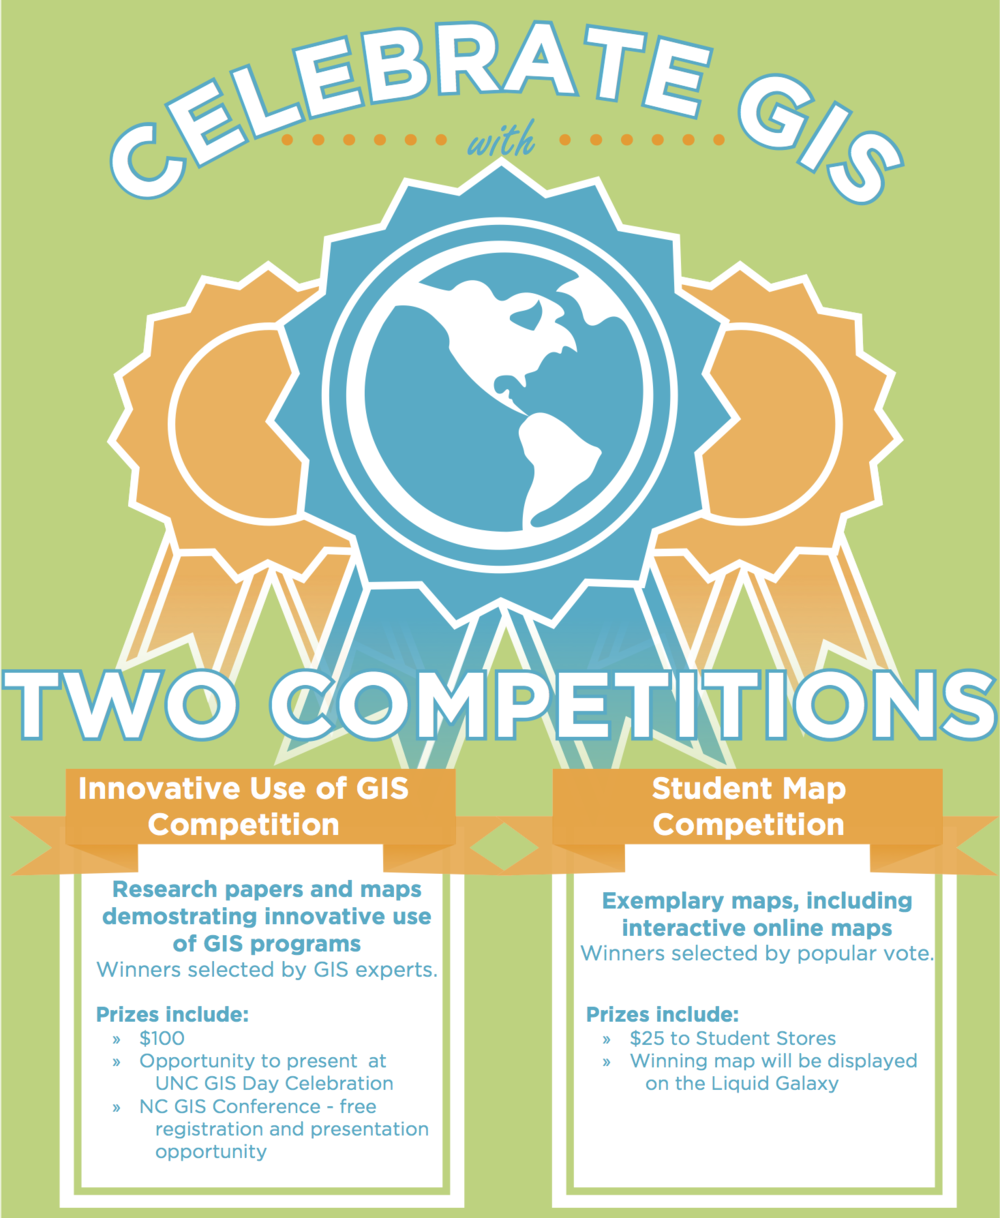 giscompetition